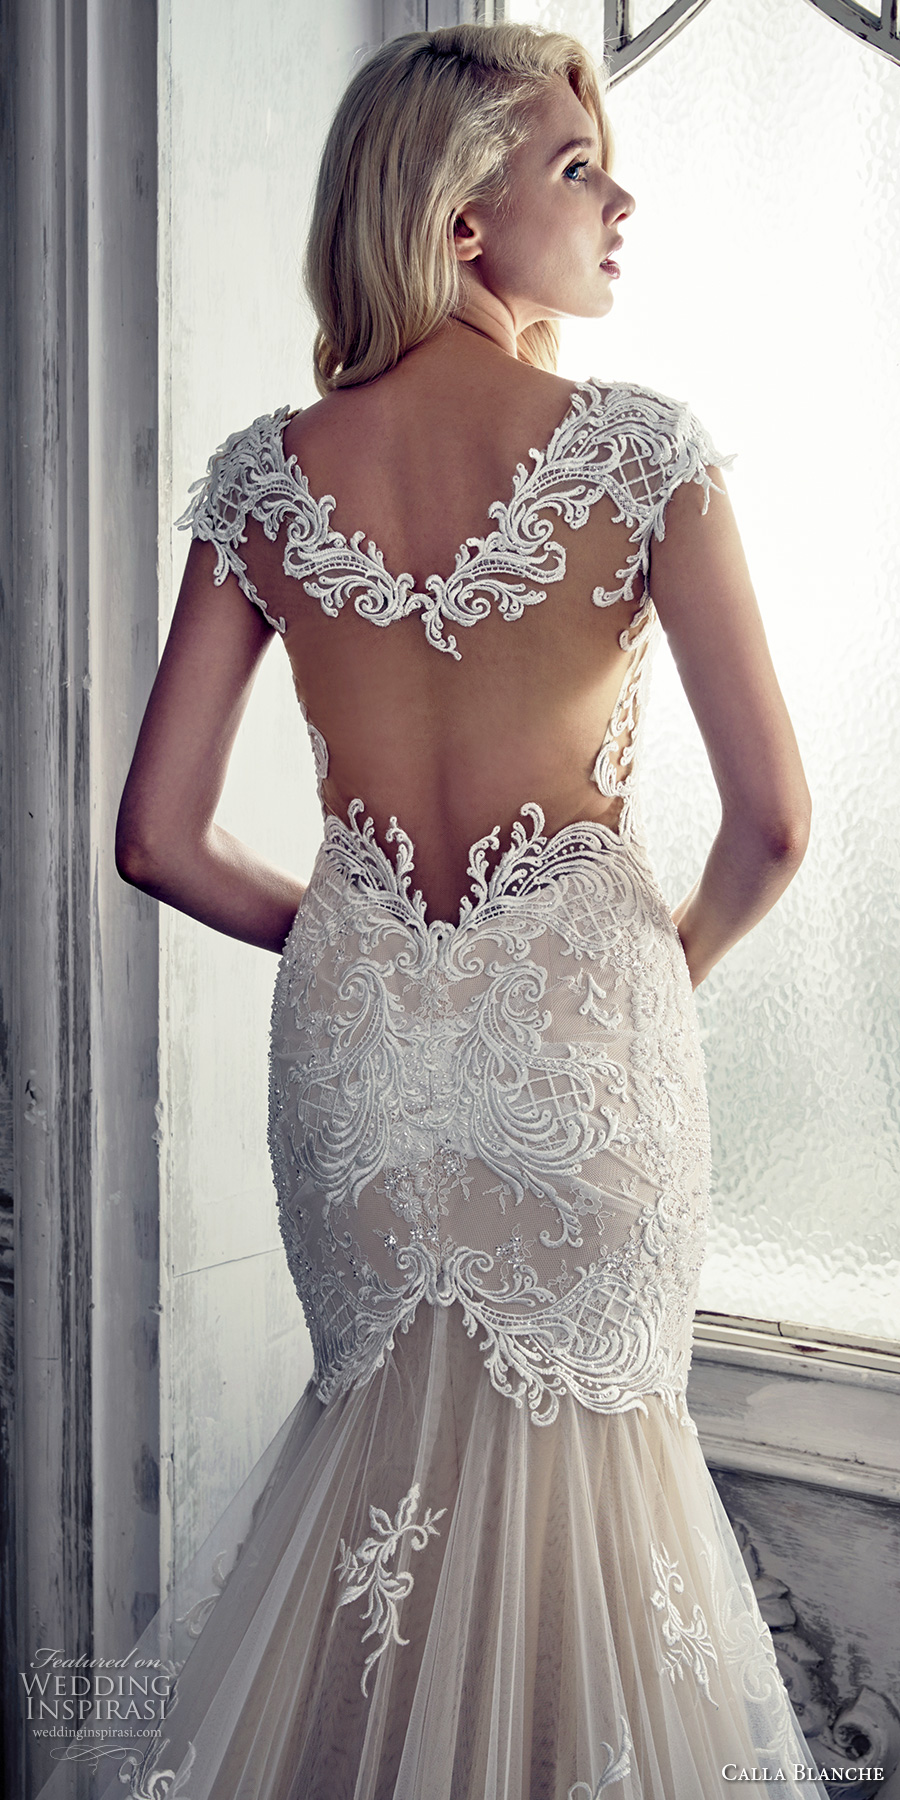 calla blanche spring 2017 bridal cap sleeves thick strap deep plunging sweetheart neckline heavily embellished bodice elegant sheath fit flare wedding dress keyhole back royal train (17112) zbv